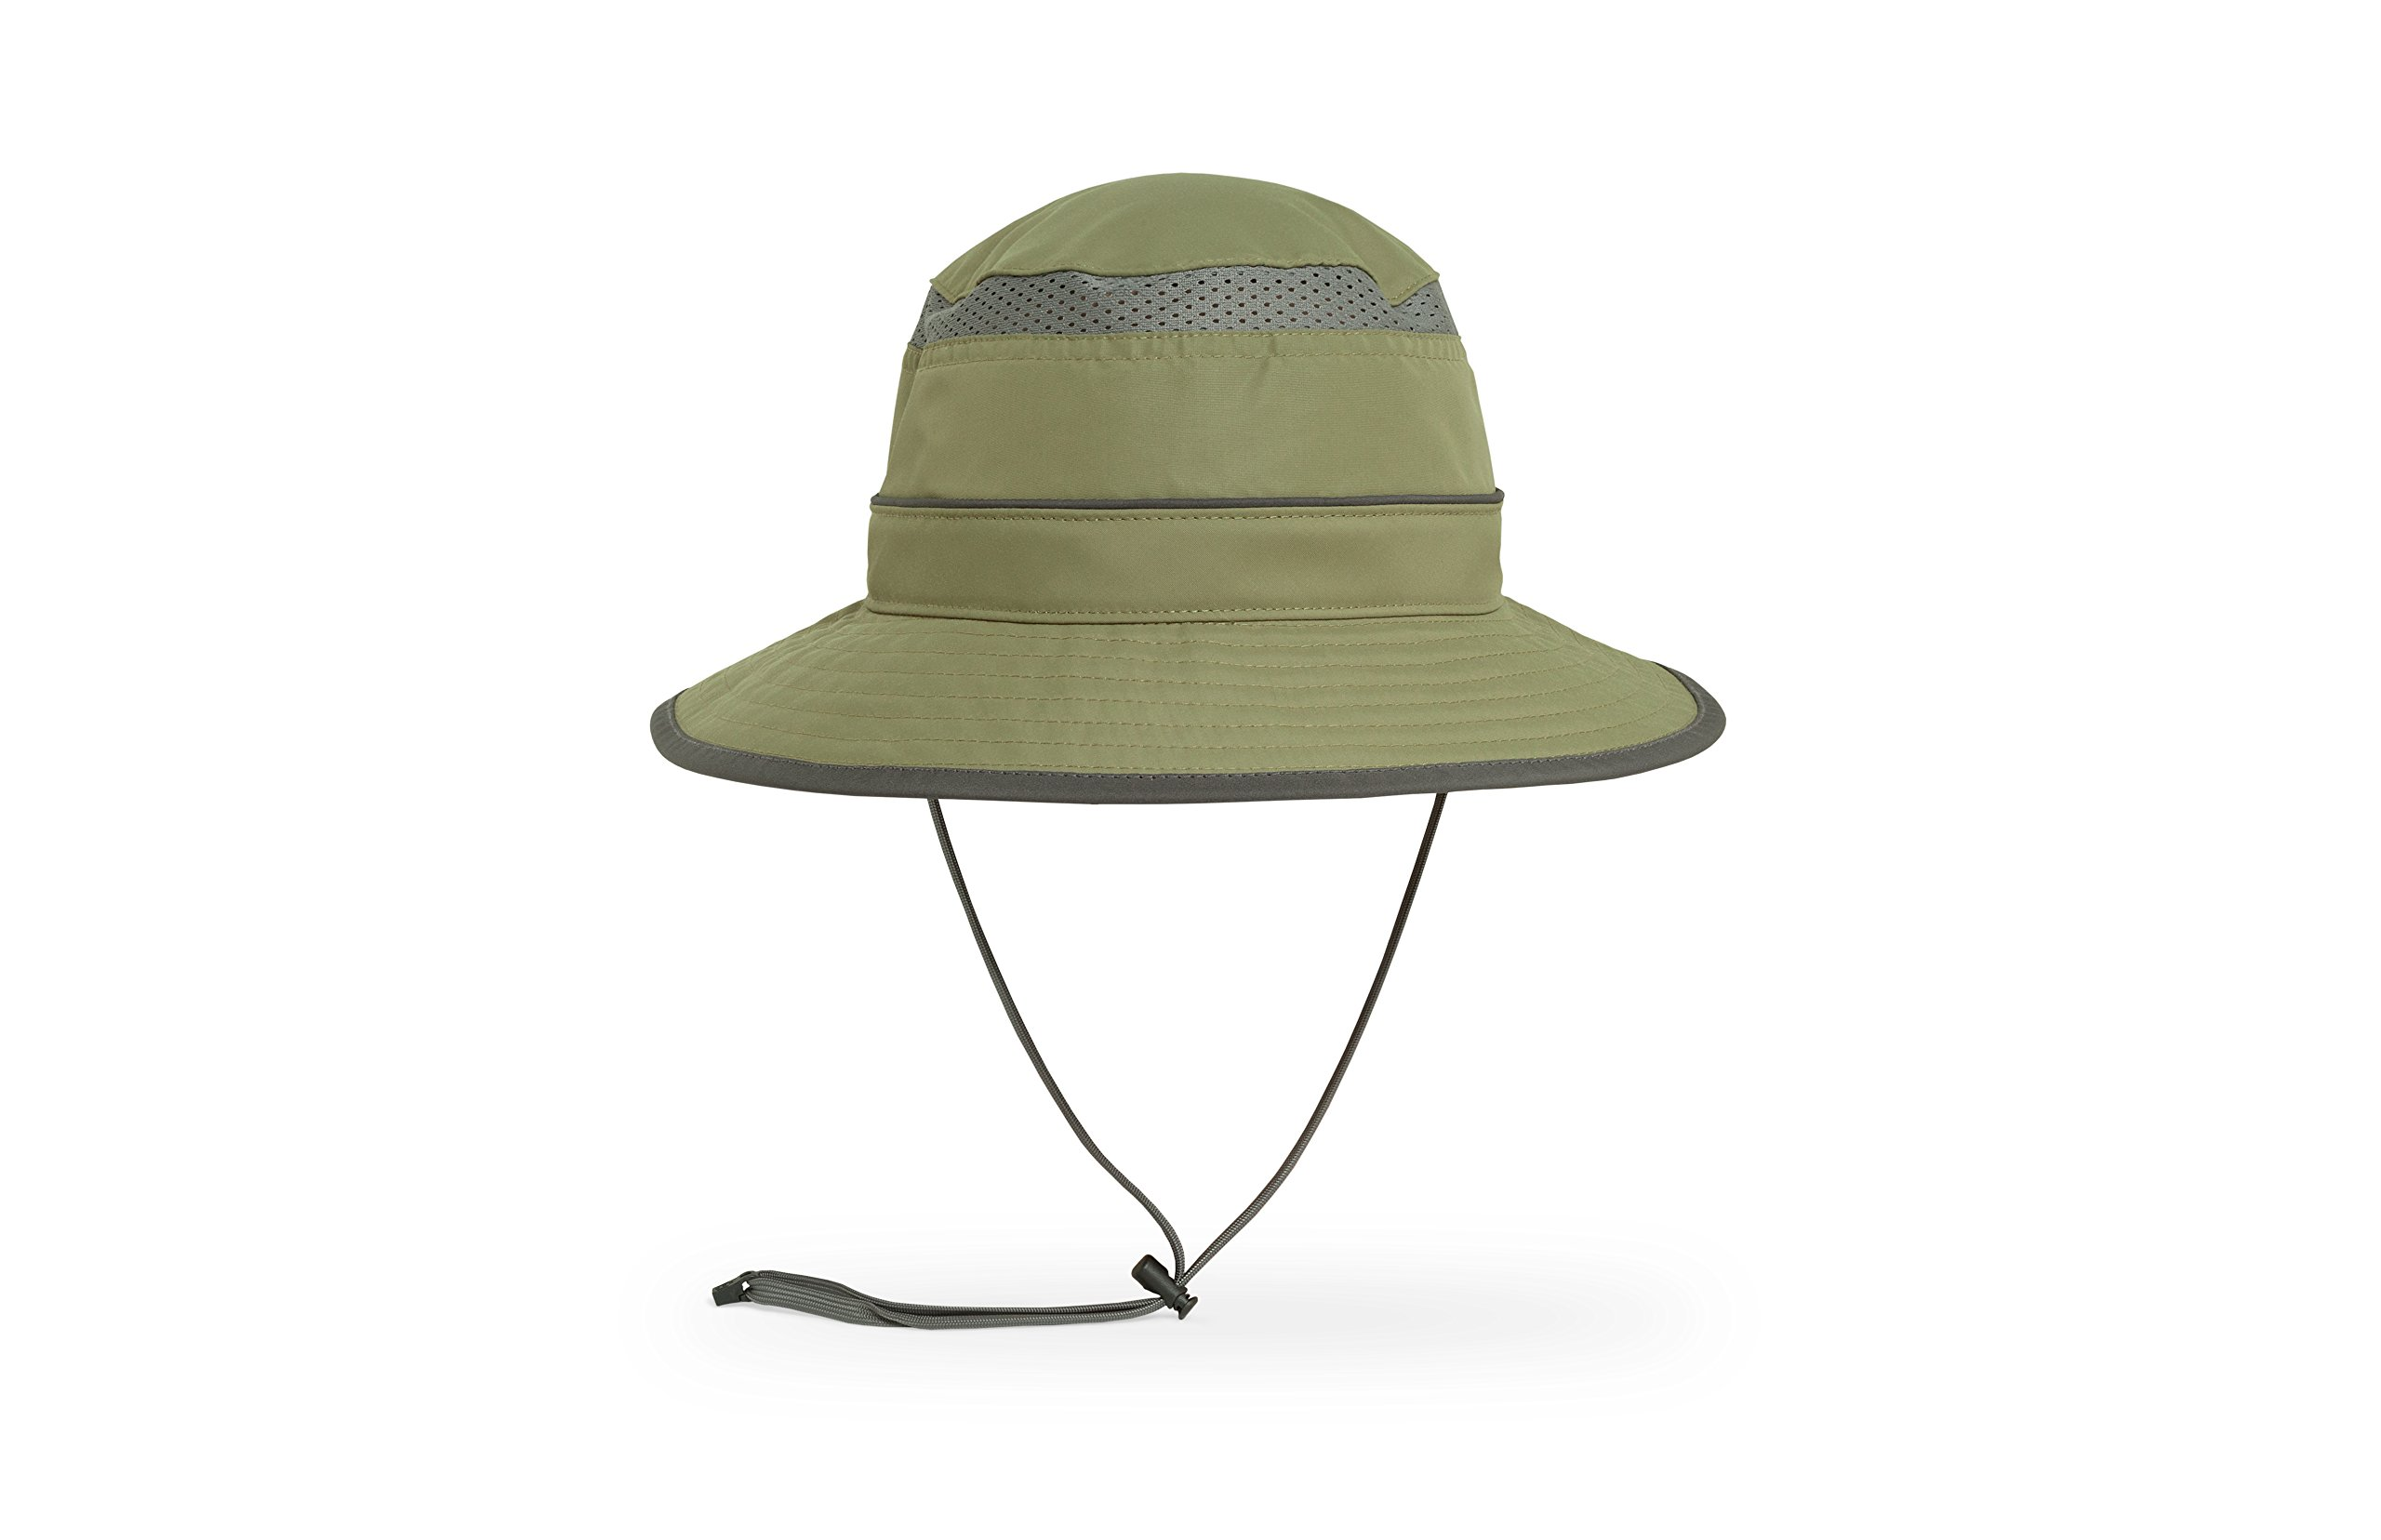 Sunday Afternoons Solar Bucket Hat, Chaparral, Large by Sunday Afternoons